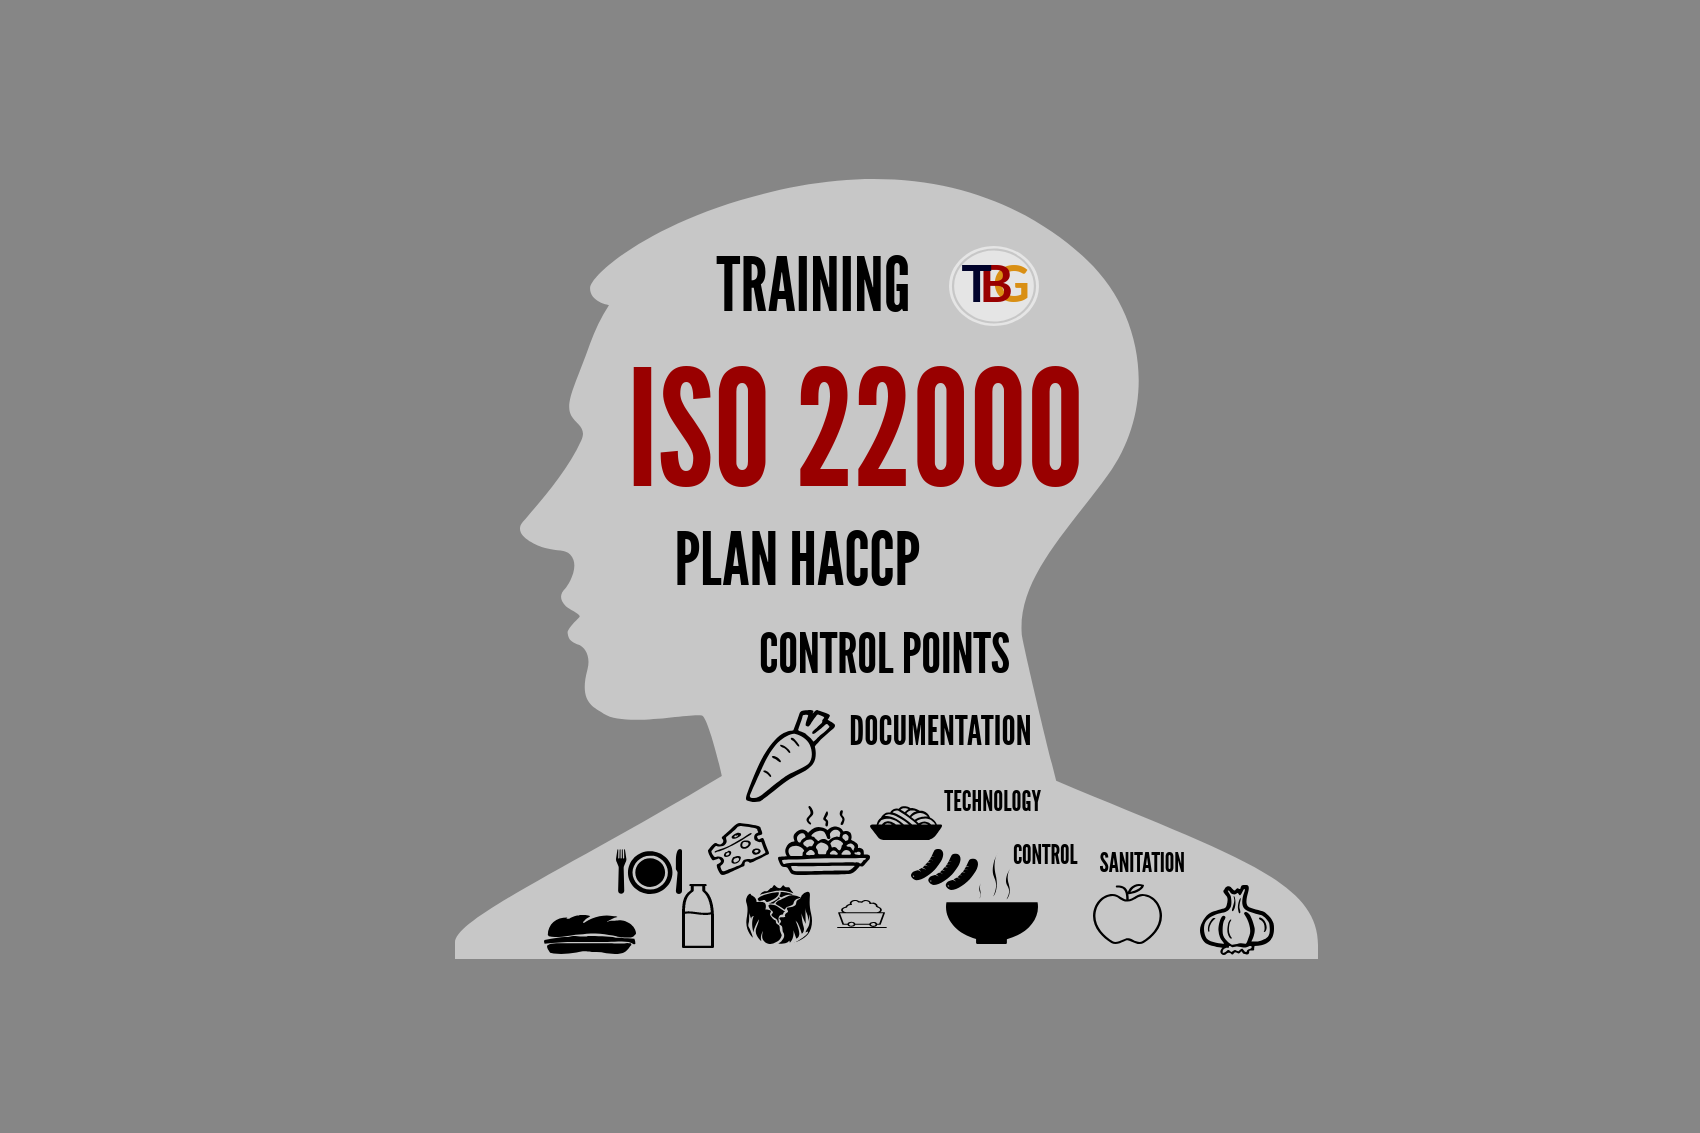 THE NEW VERSION OF ISO 22000: 2018 STANDARD